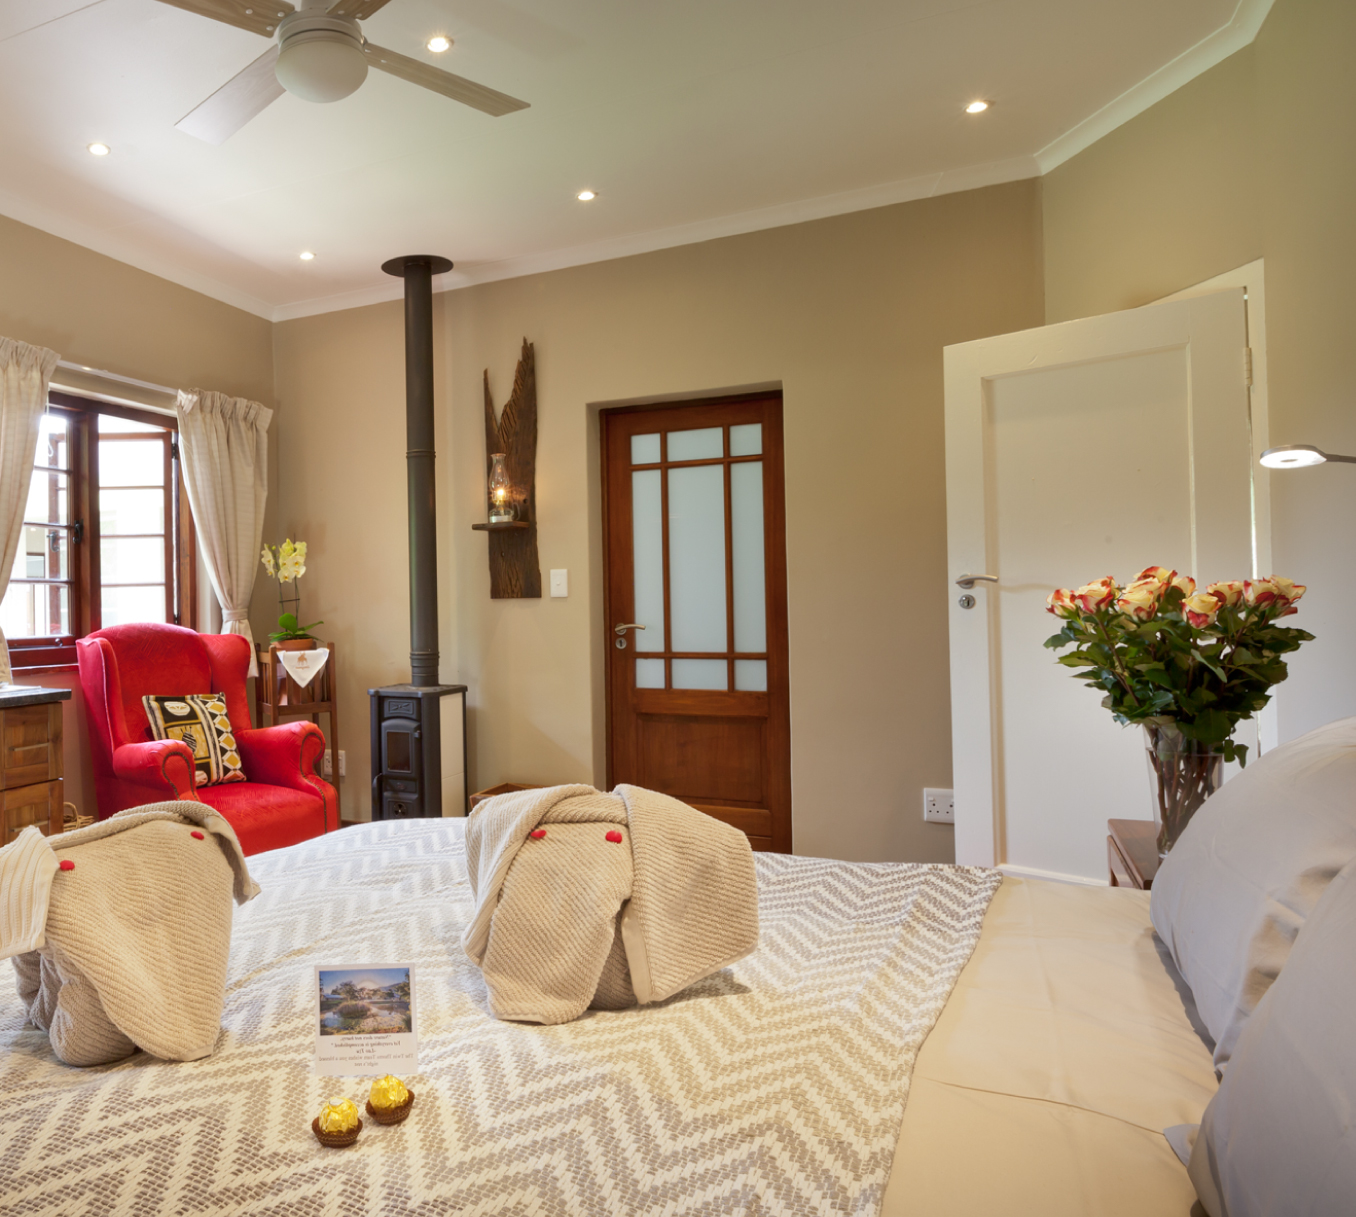 Twin-Thorns-finch-room-2